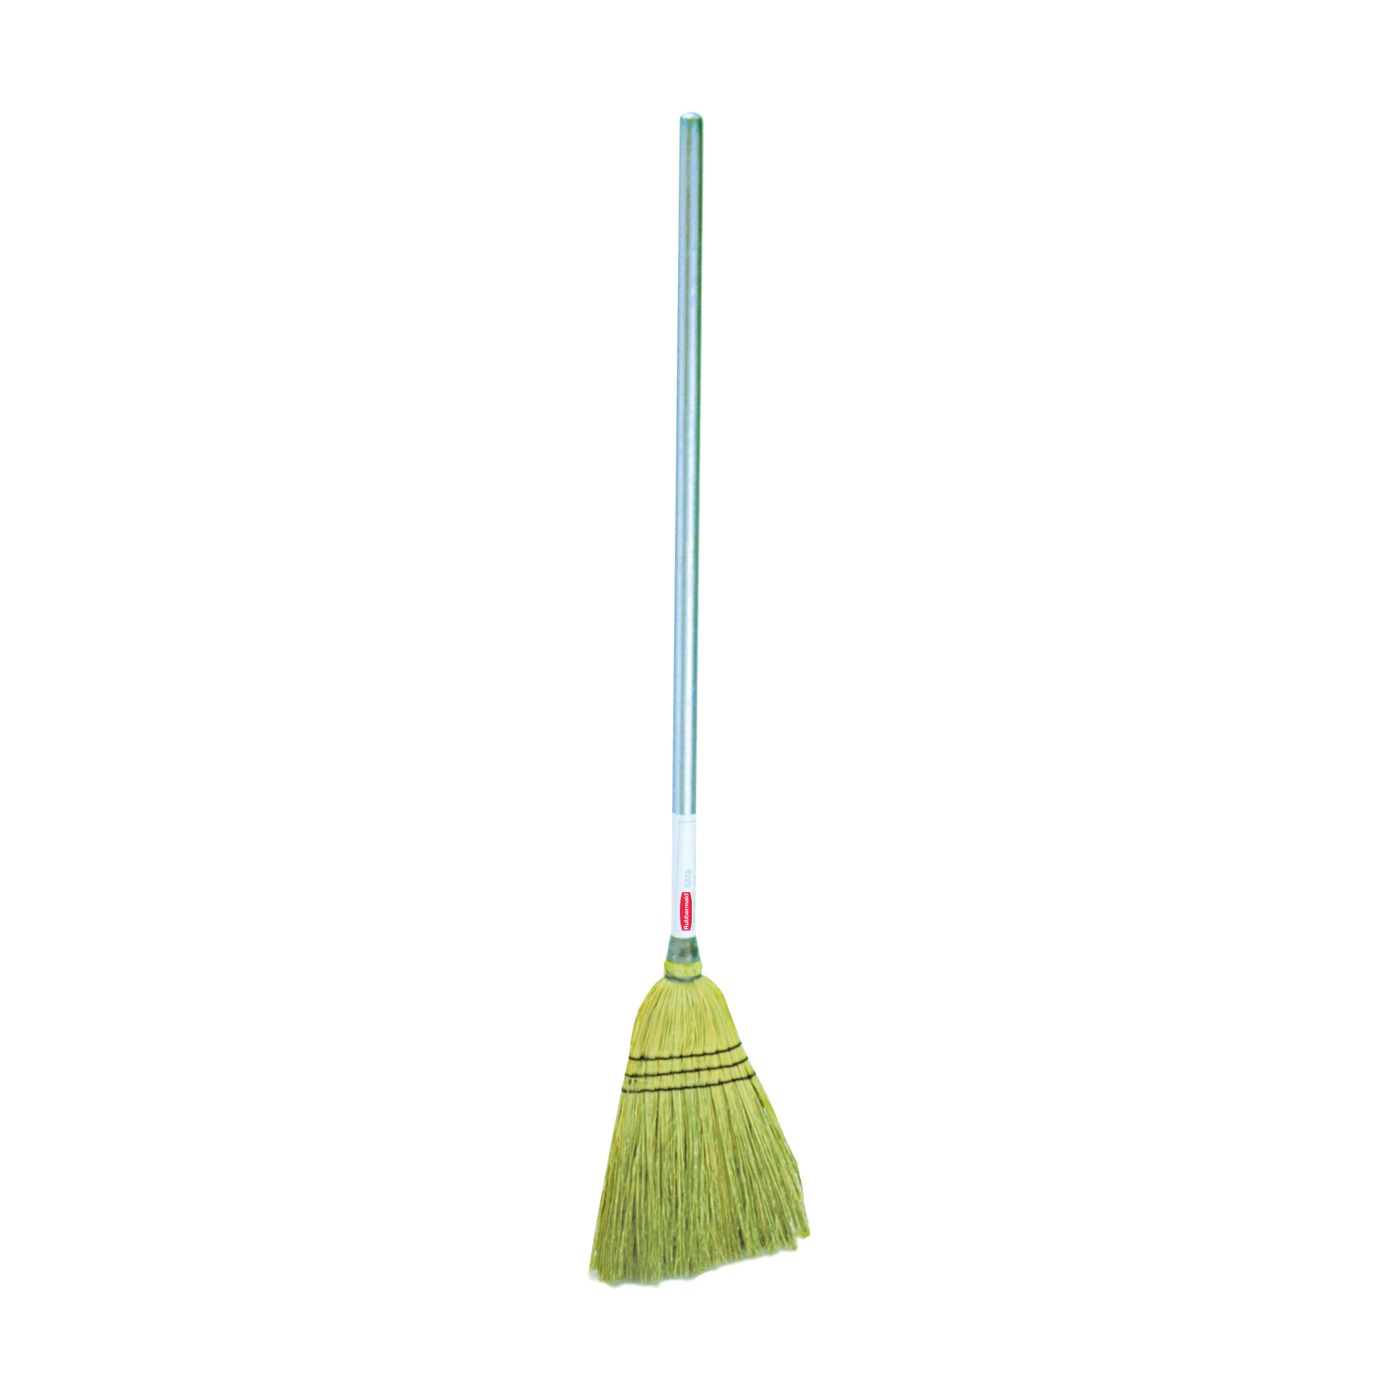 Picture of Rubbermaid 1880163 Upright Broom, 7-1/2 in L Trim, Corn Fiber Bristle